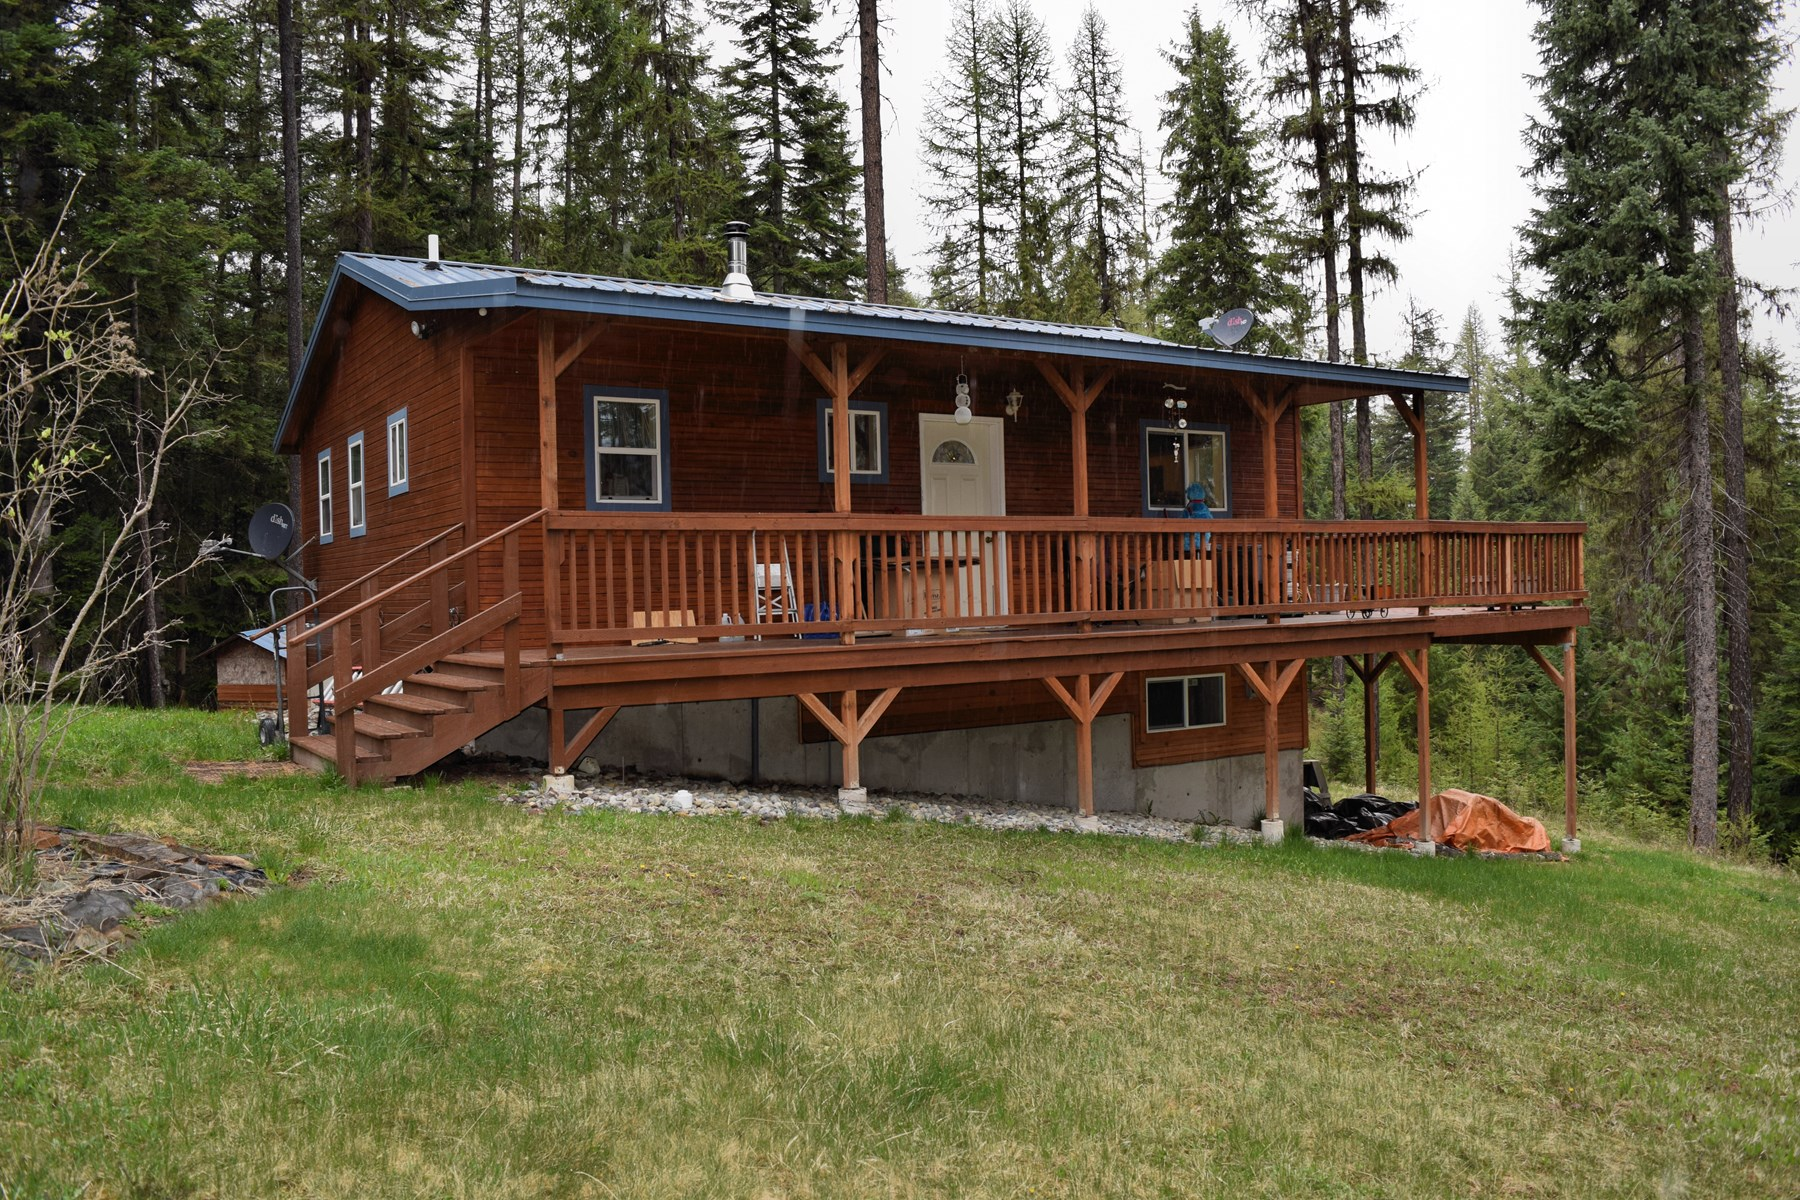 Montana Mountains Cabin and Land For Sale, Thompson falls